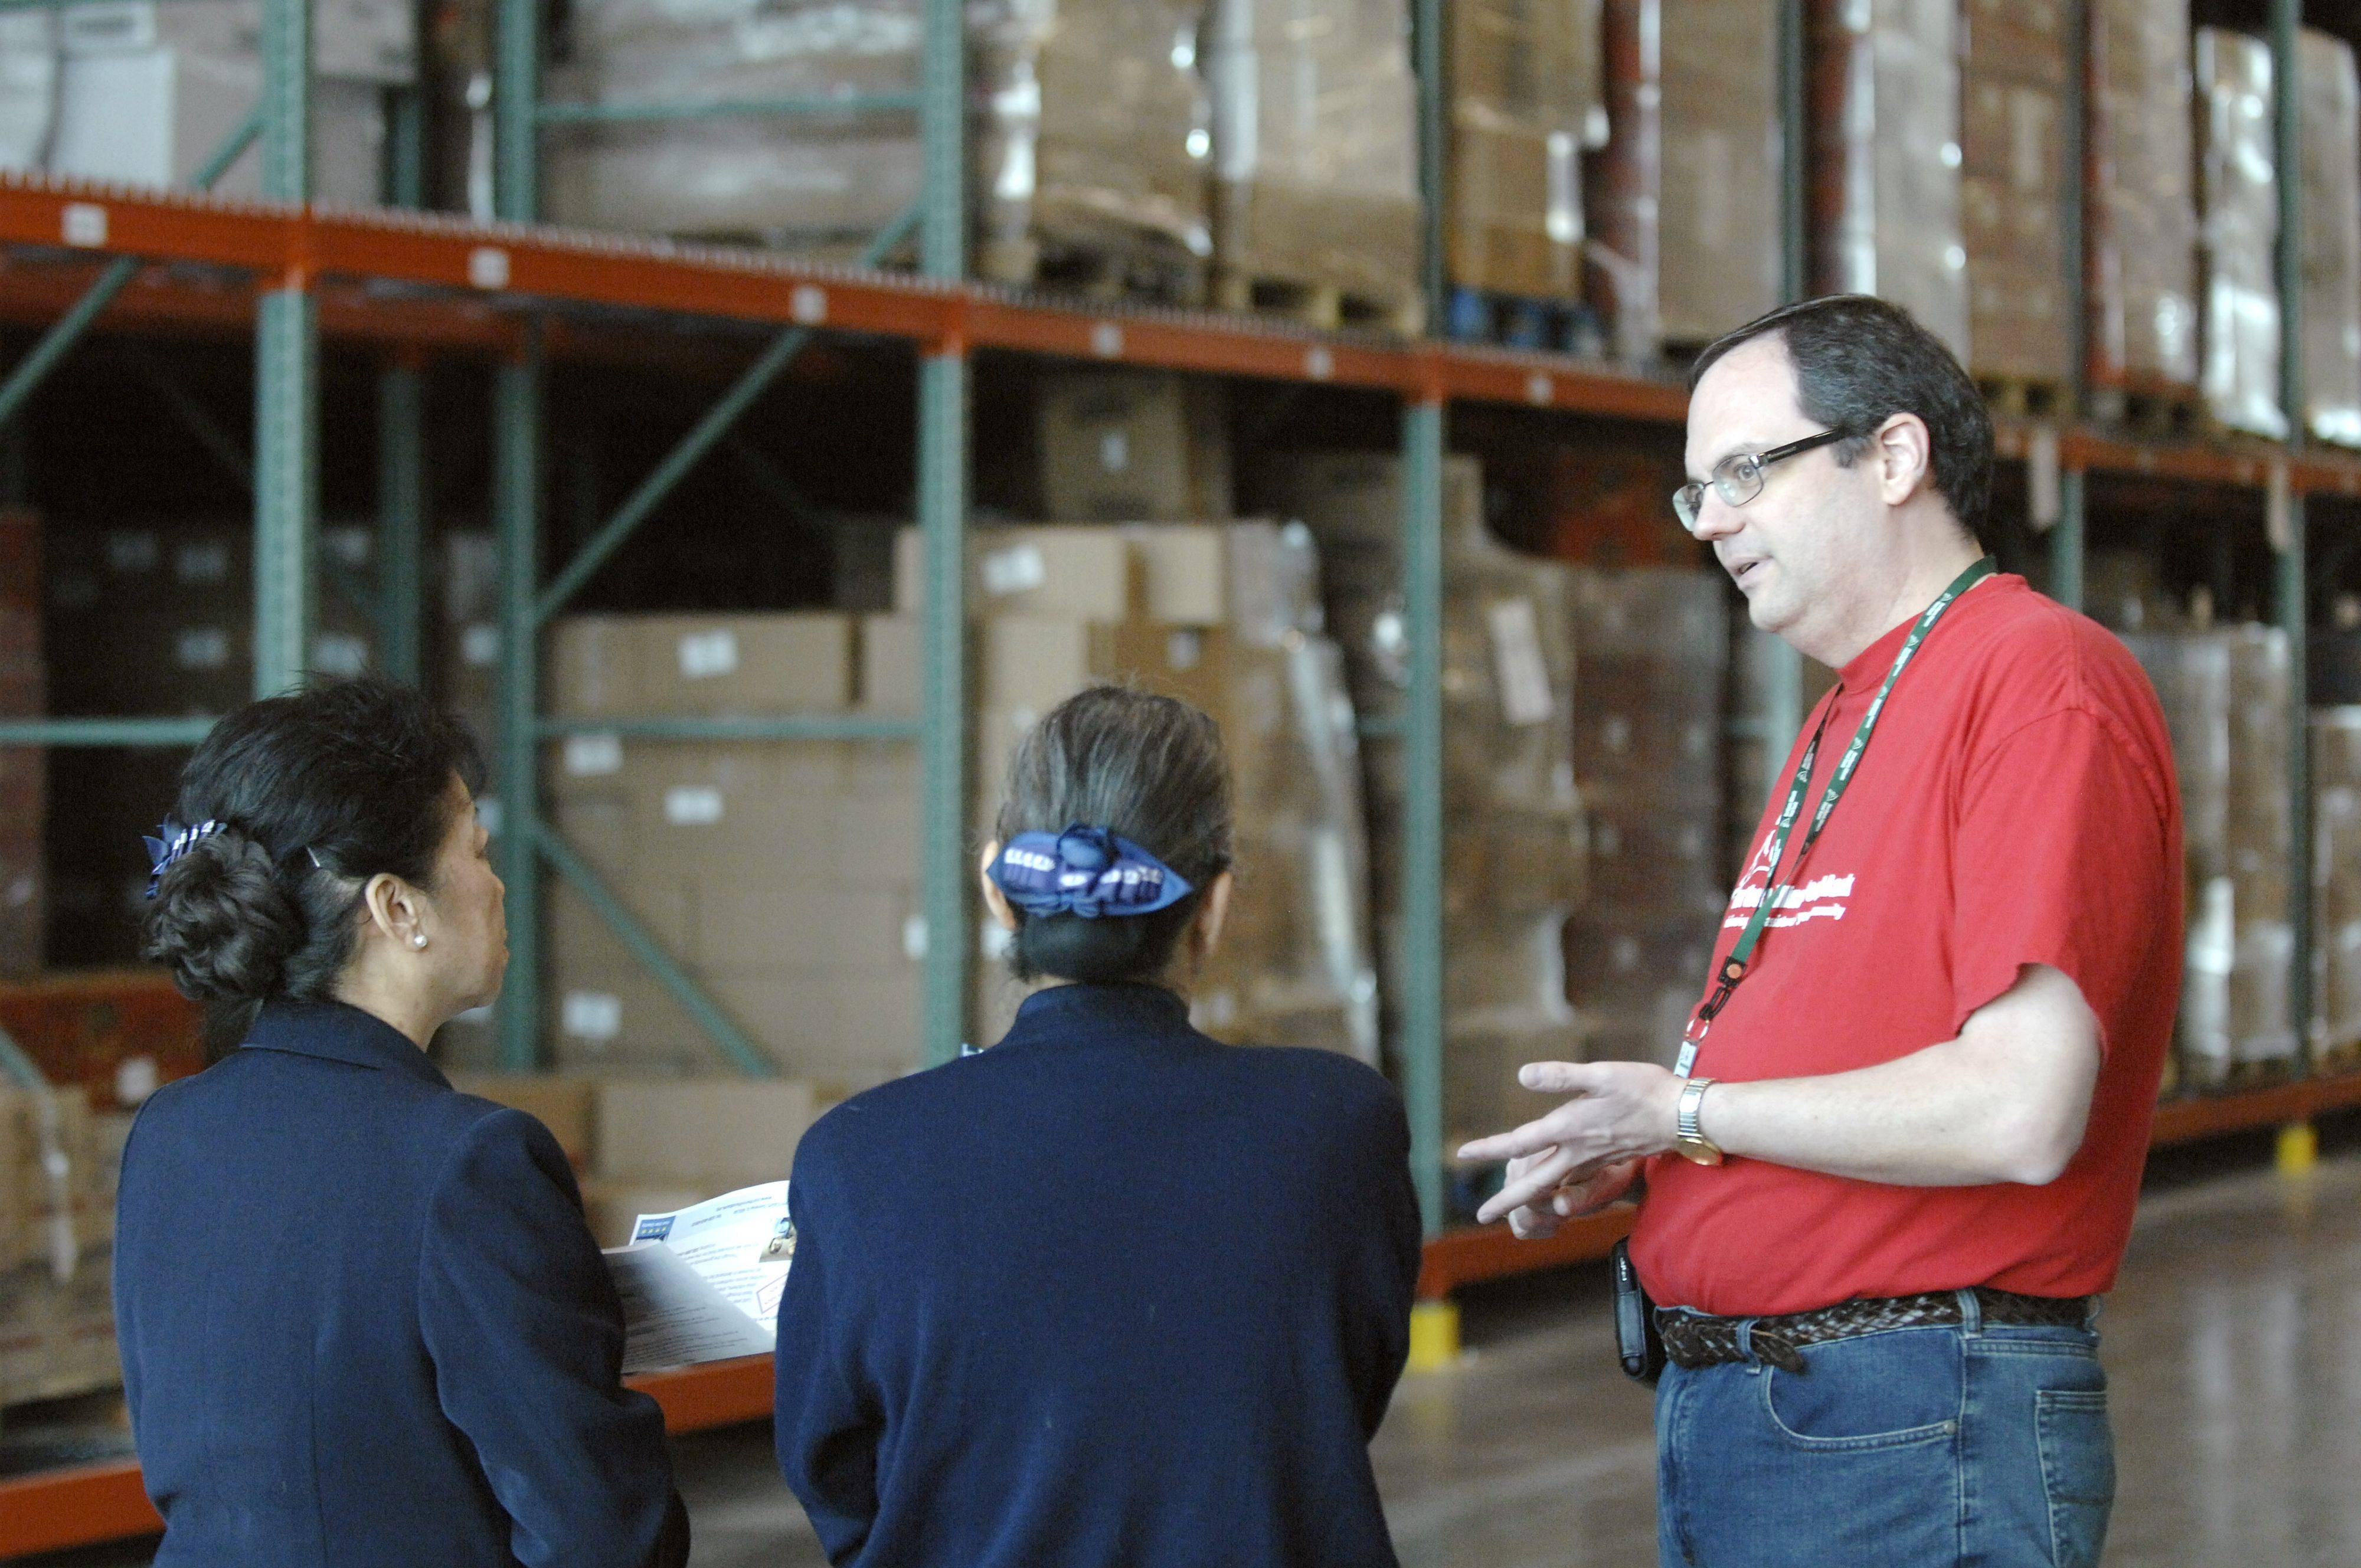 Volunteer supervisor Scott Heinzman talks to Pin Hwang, left, and Emilie Chain of the Buddhist Tzu Chi Foundation, in Darien, on Saturday in the warehouse of the new Northern Illinois Food Bank in Geneva.